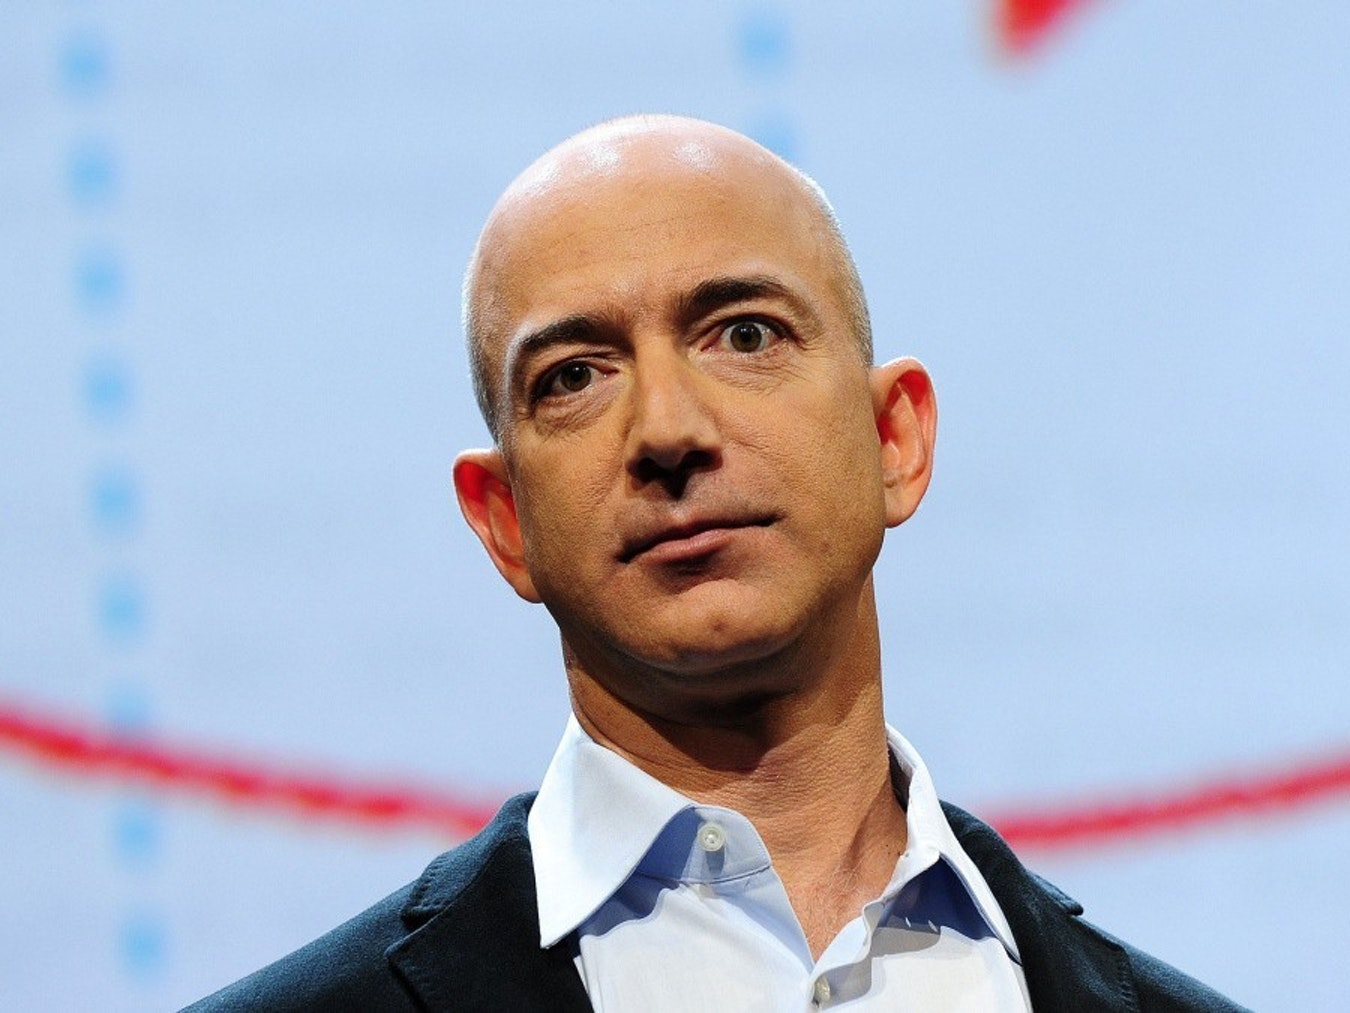 How to Watch Jeff Bezos' Transformers Conference Today